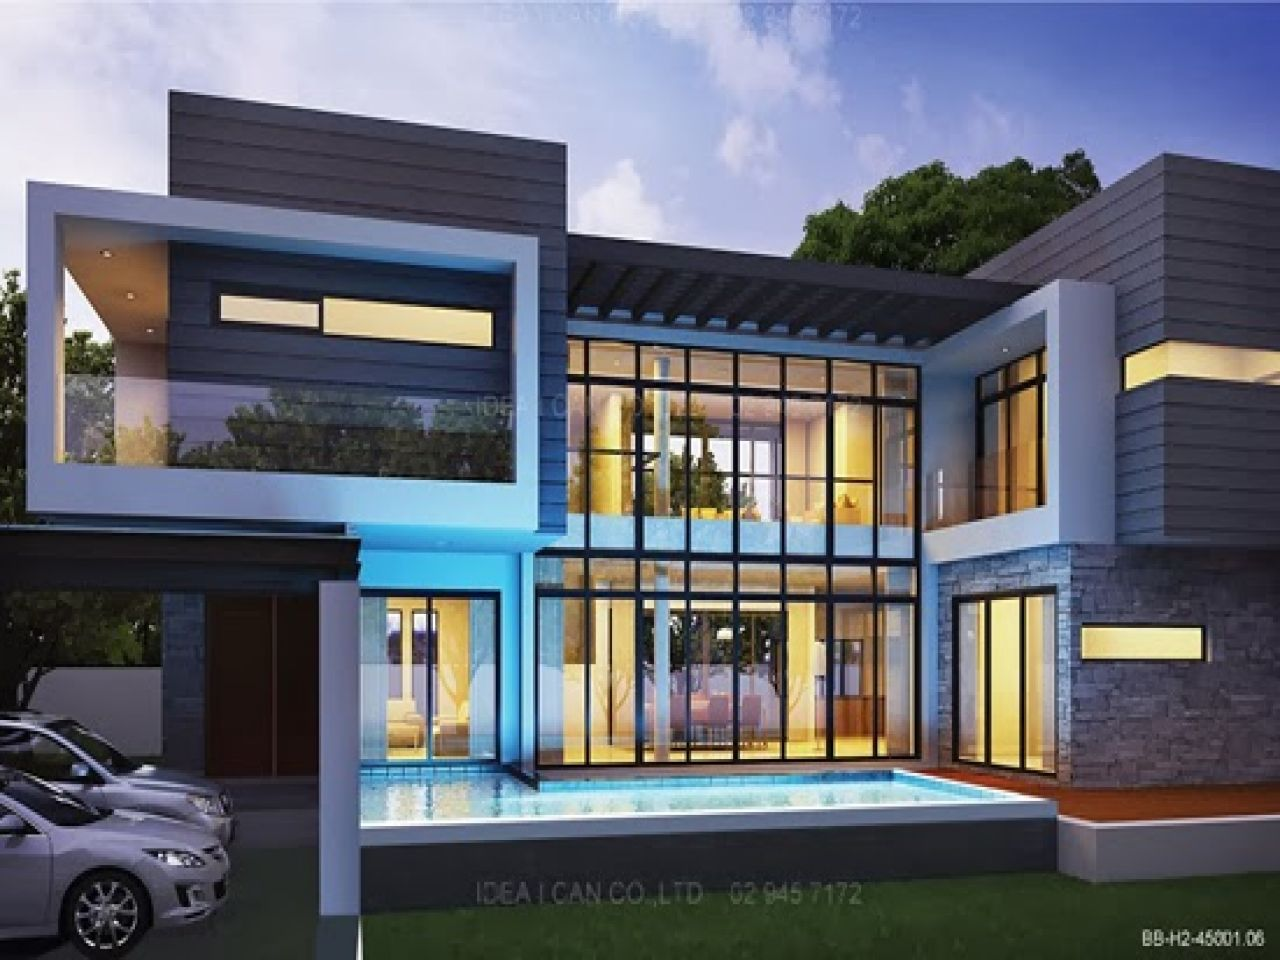 Residential 2 storey house plan modern 2 story house plans for Modern residential house plans